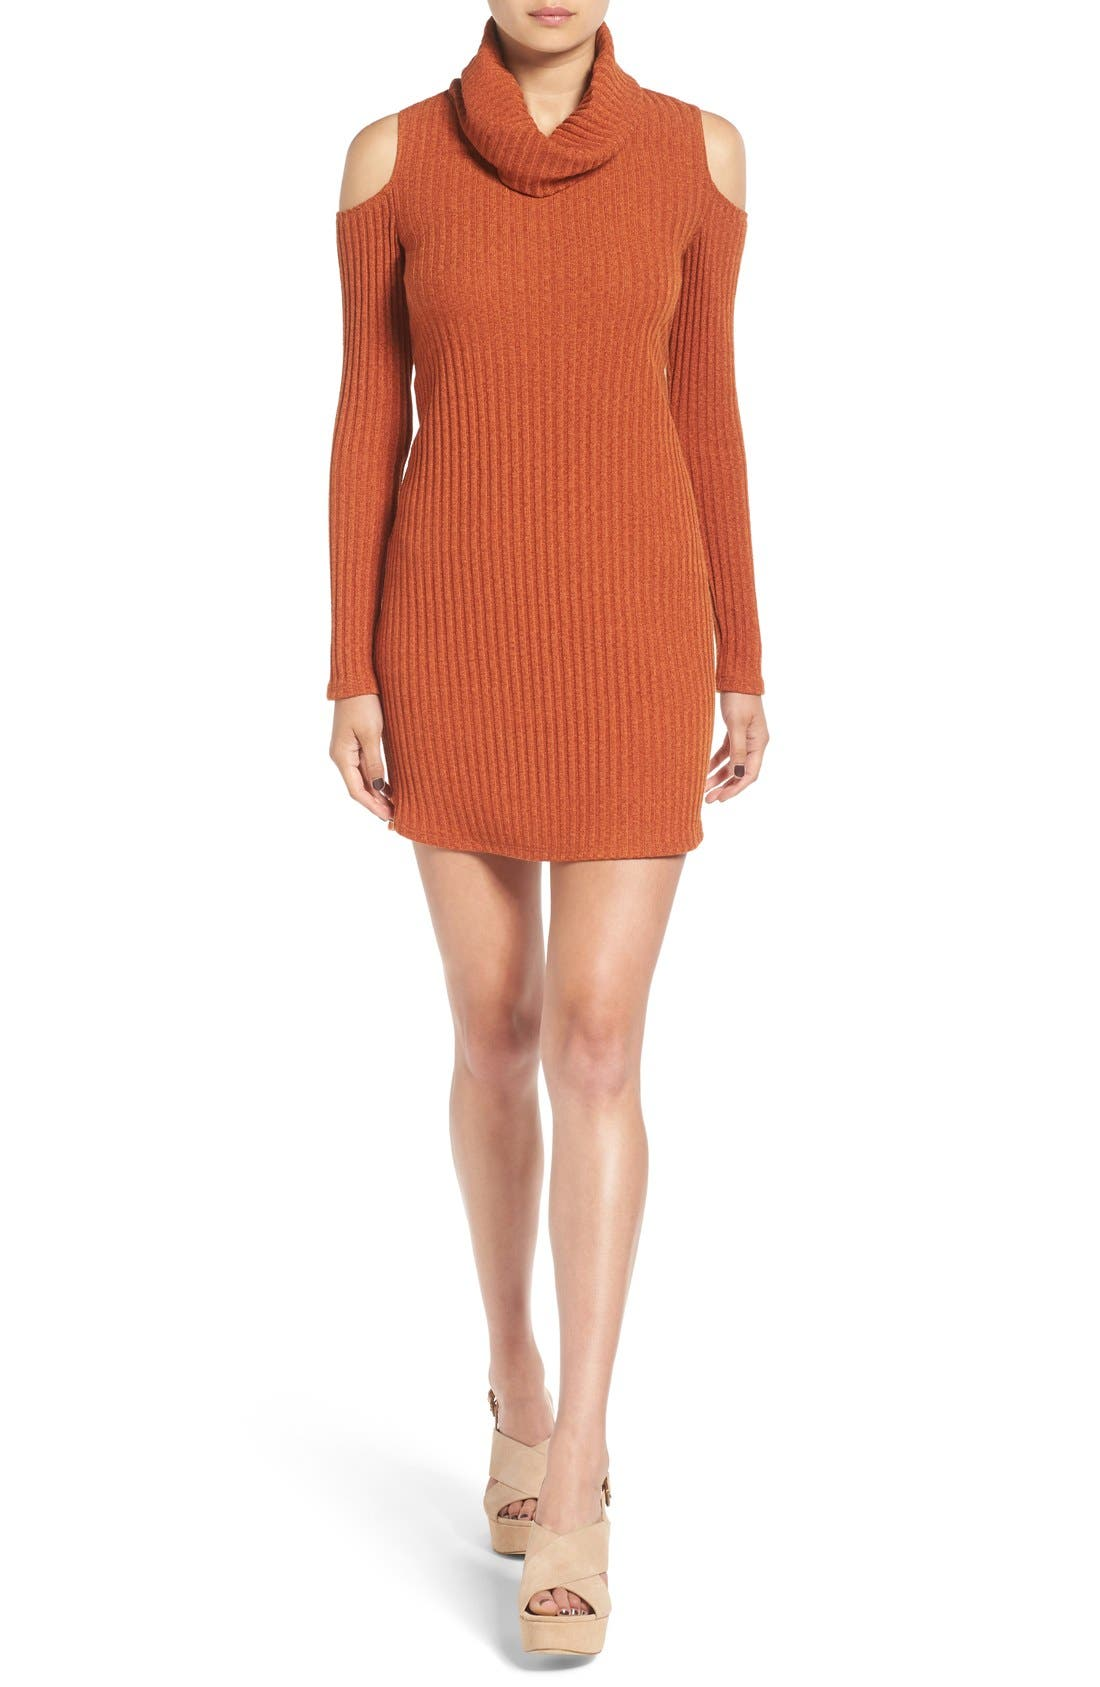 Alternate Image 1 Selected - Socialite Cold Shoulder Rib Knit Dress